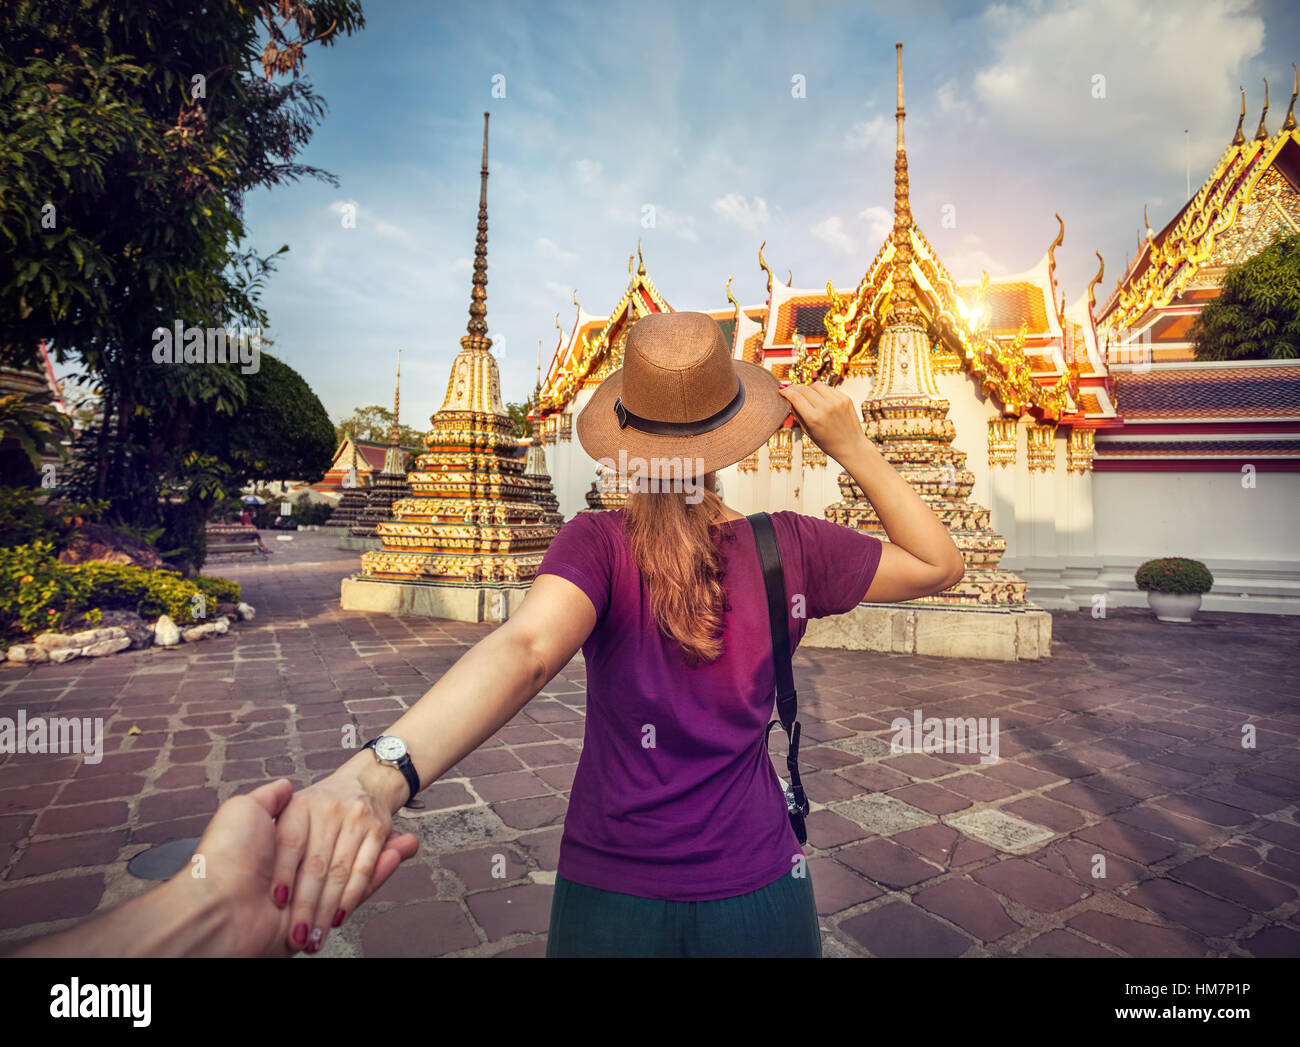 Woman in hat and purple t-shirt leading man by hand to the Wat Pho famous temple in Bangkok, Thailand. - Stock Image